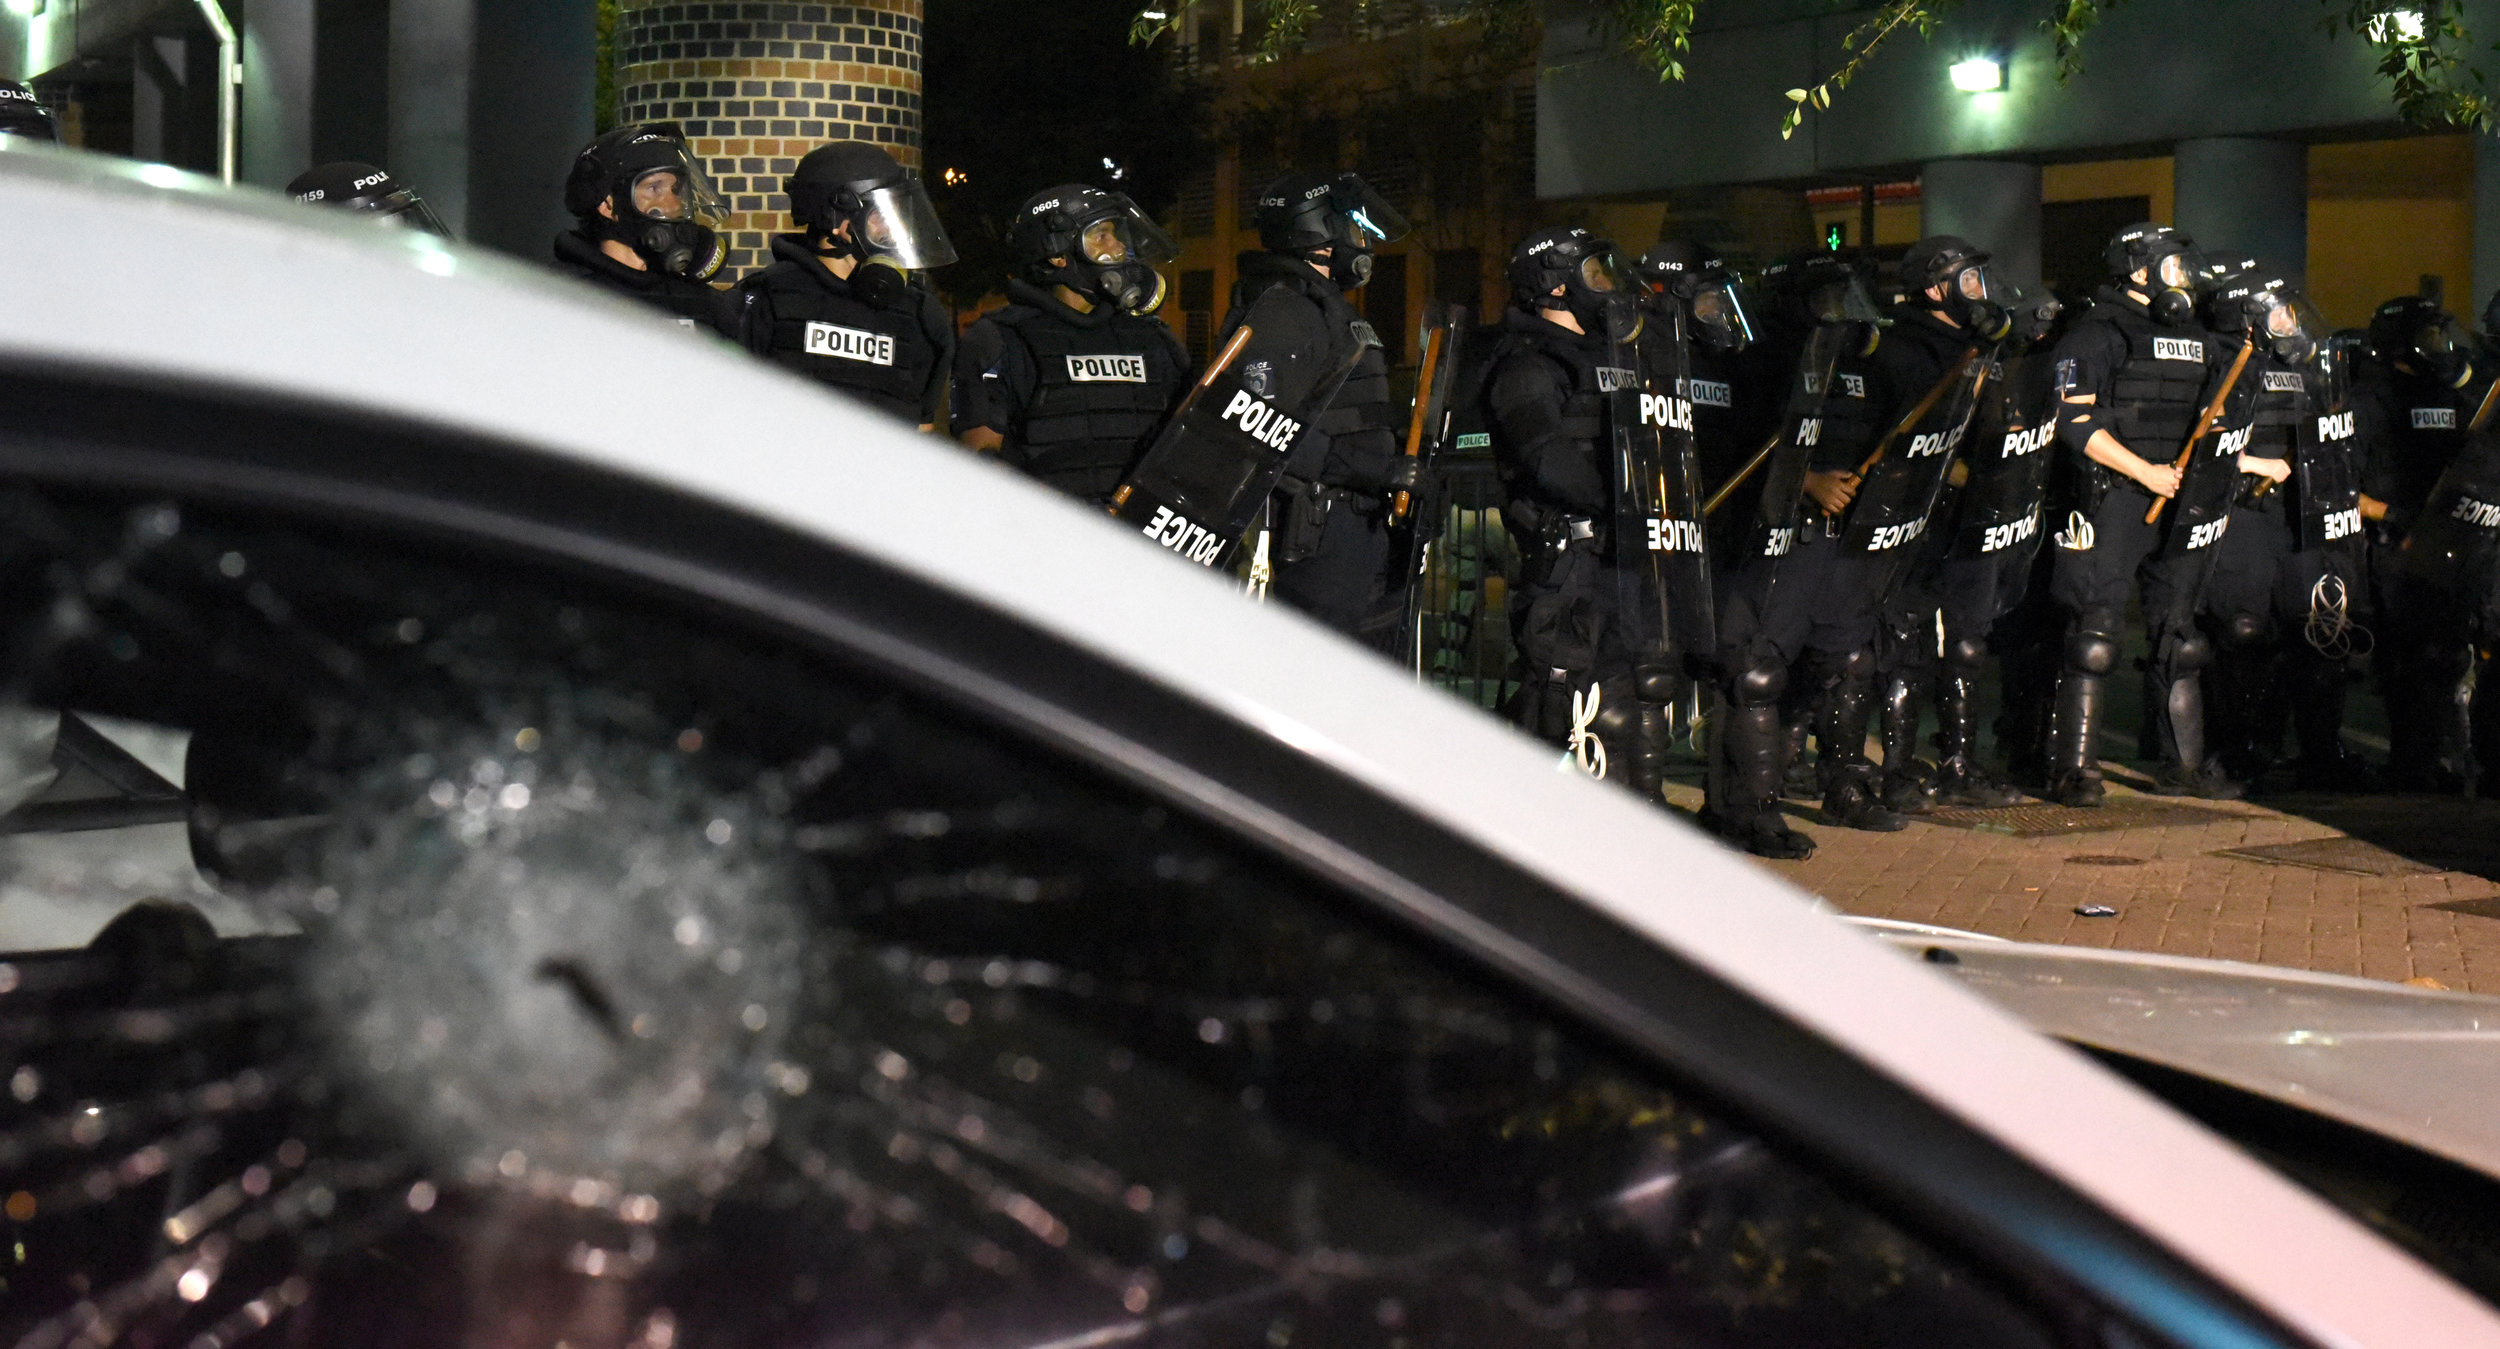 Riot police officers stand near an automobile with a smashed window as they confront protestors in Charlotte, North Carolina, USA, 21 September 2016. North Carolina governor Pat McCrory declared a state of emergency after protesters took to the streets of Charlotte, North Carolina, for the second consecutive night to demonstrate against the fatal shooting of African-American Keith Lamont Scott by police officers.